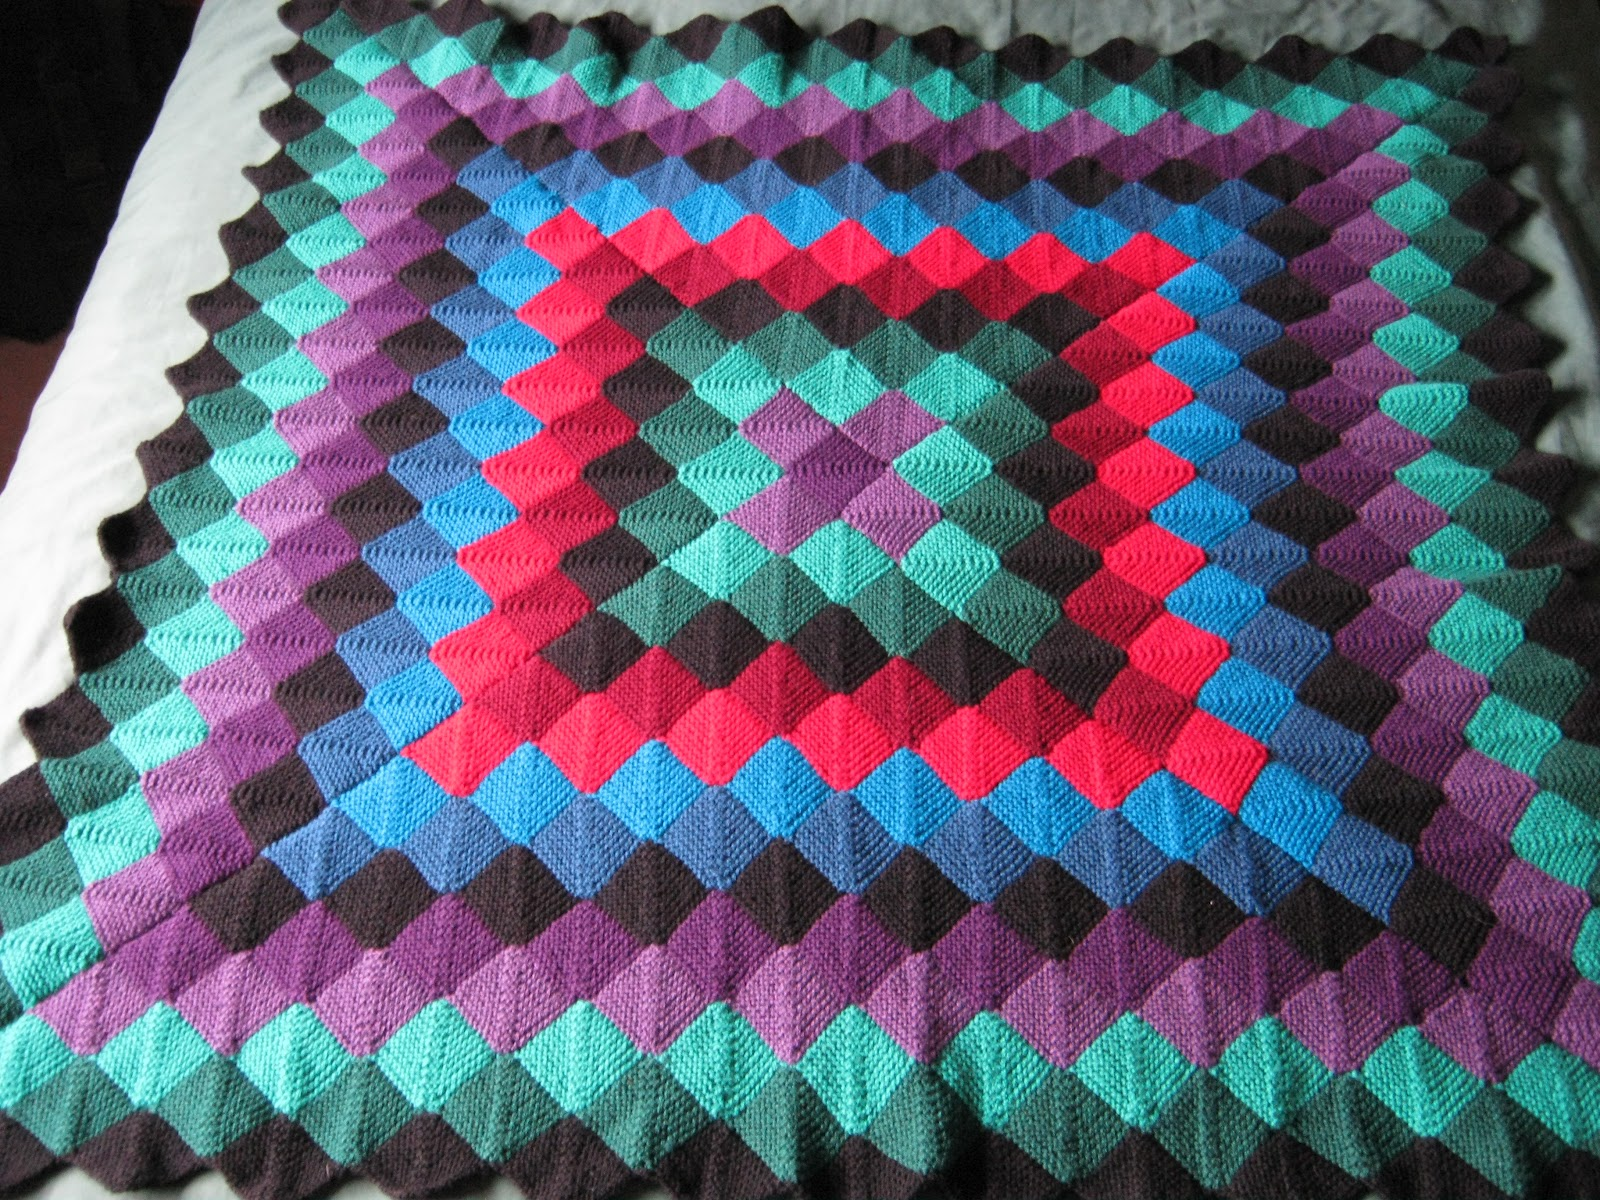 Sixties Spirit: More mitred square knitting - two throws